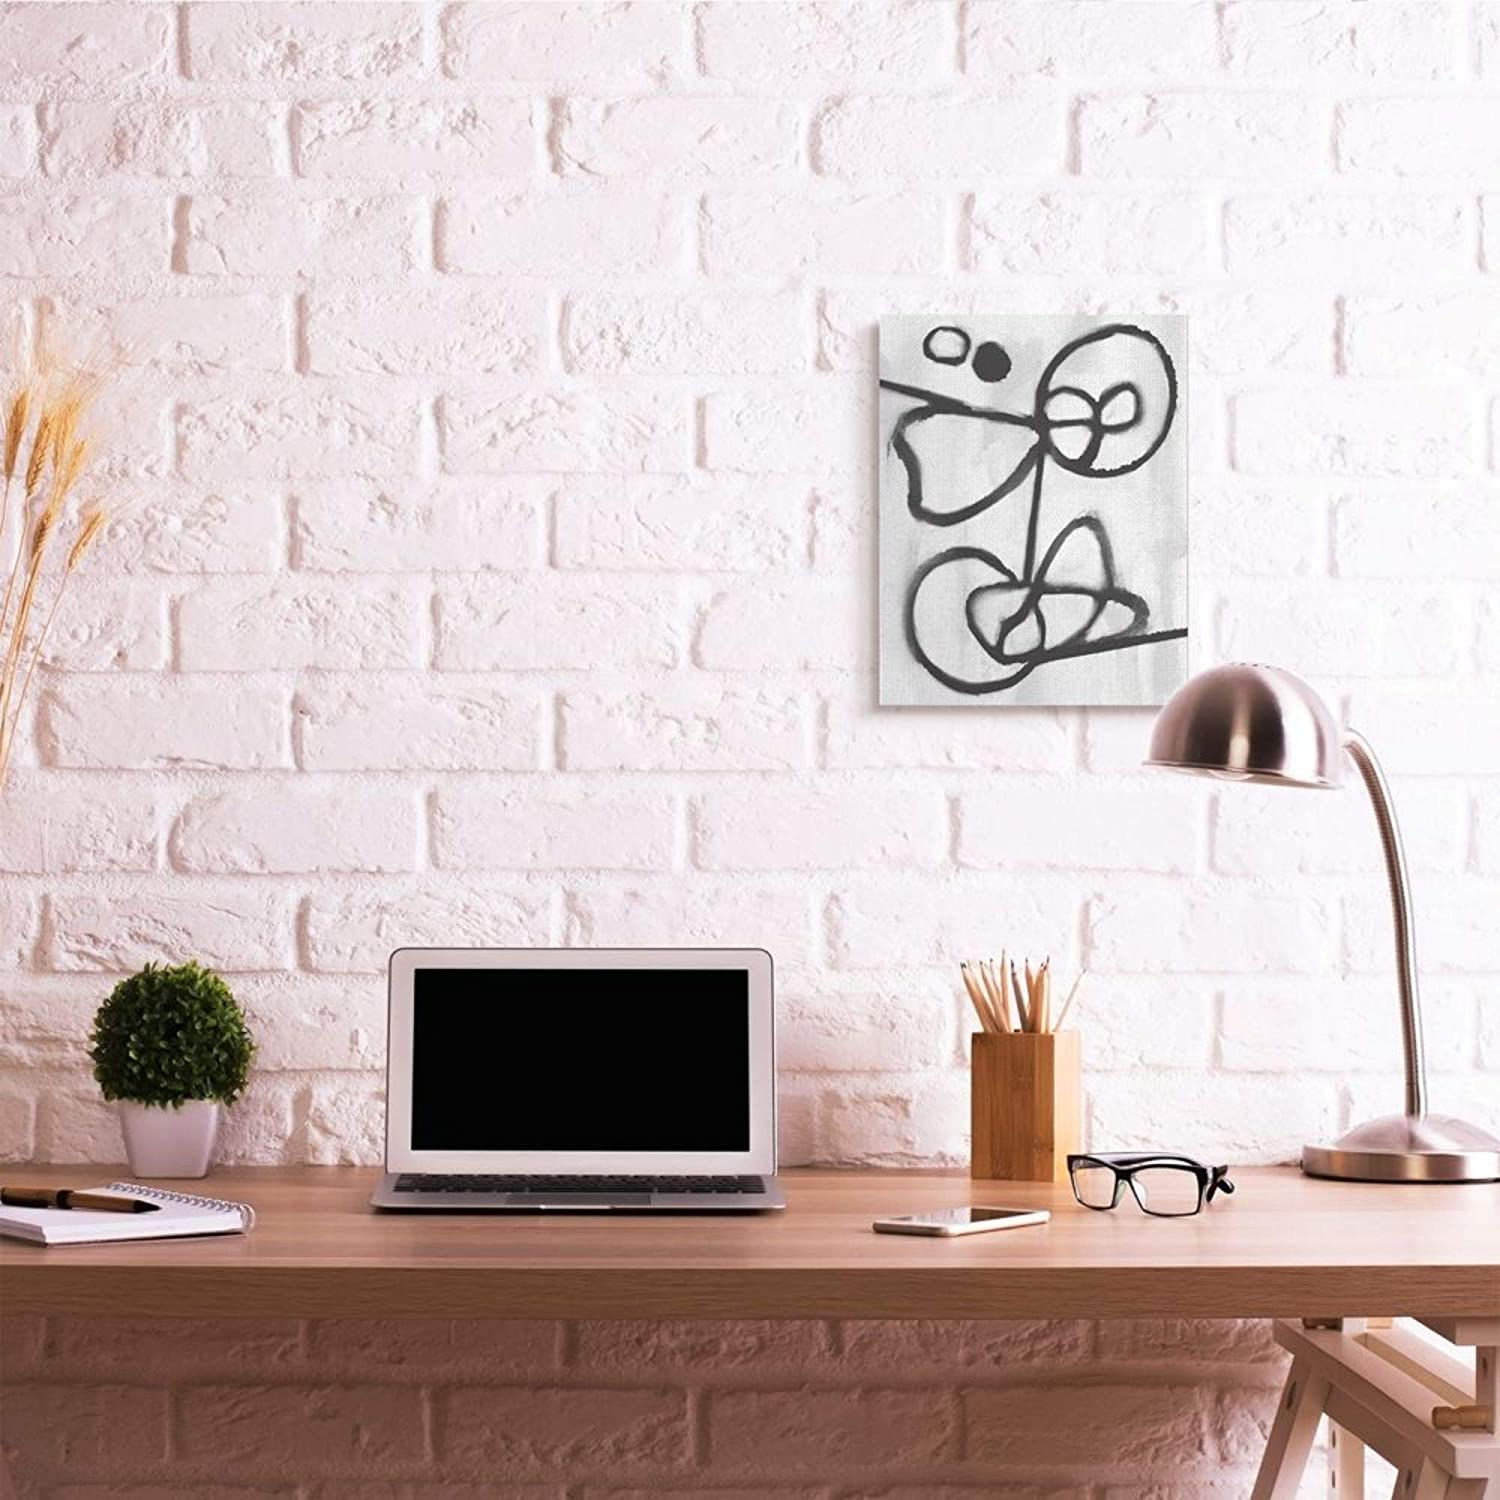 16 x 20 Stupell Industries Abstract Linework Organic Shapes Black White Canvas Daphne Polselli Wall Art